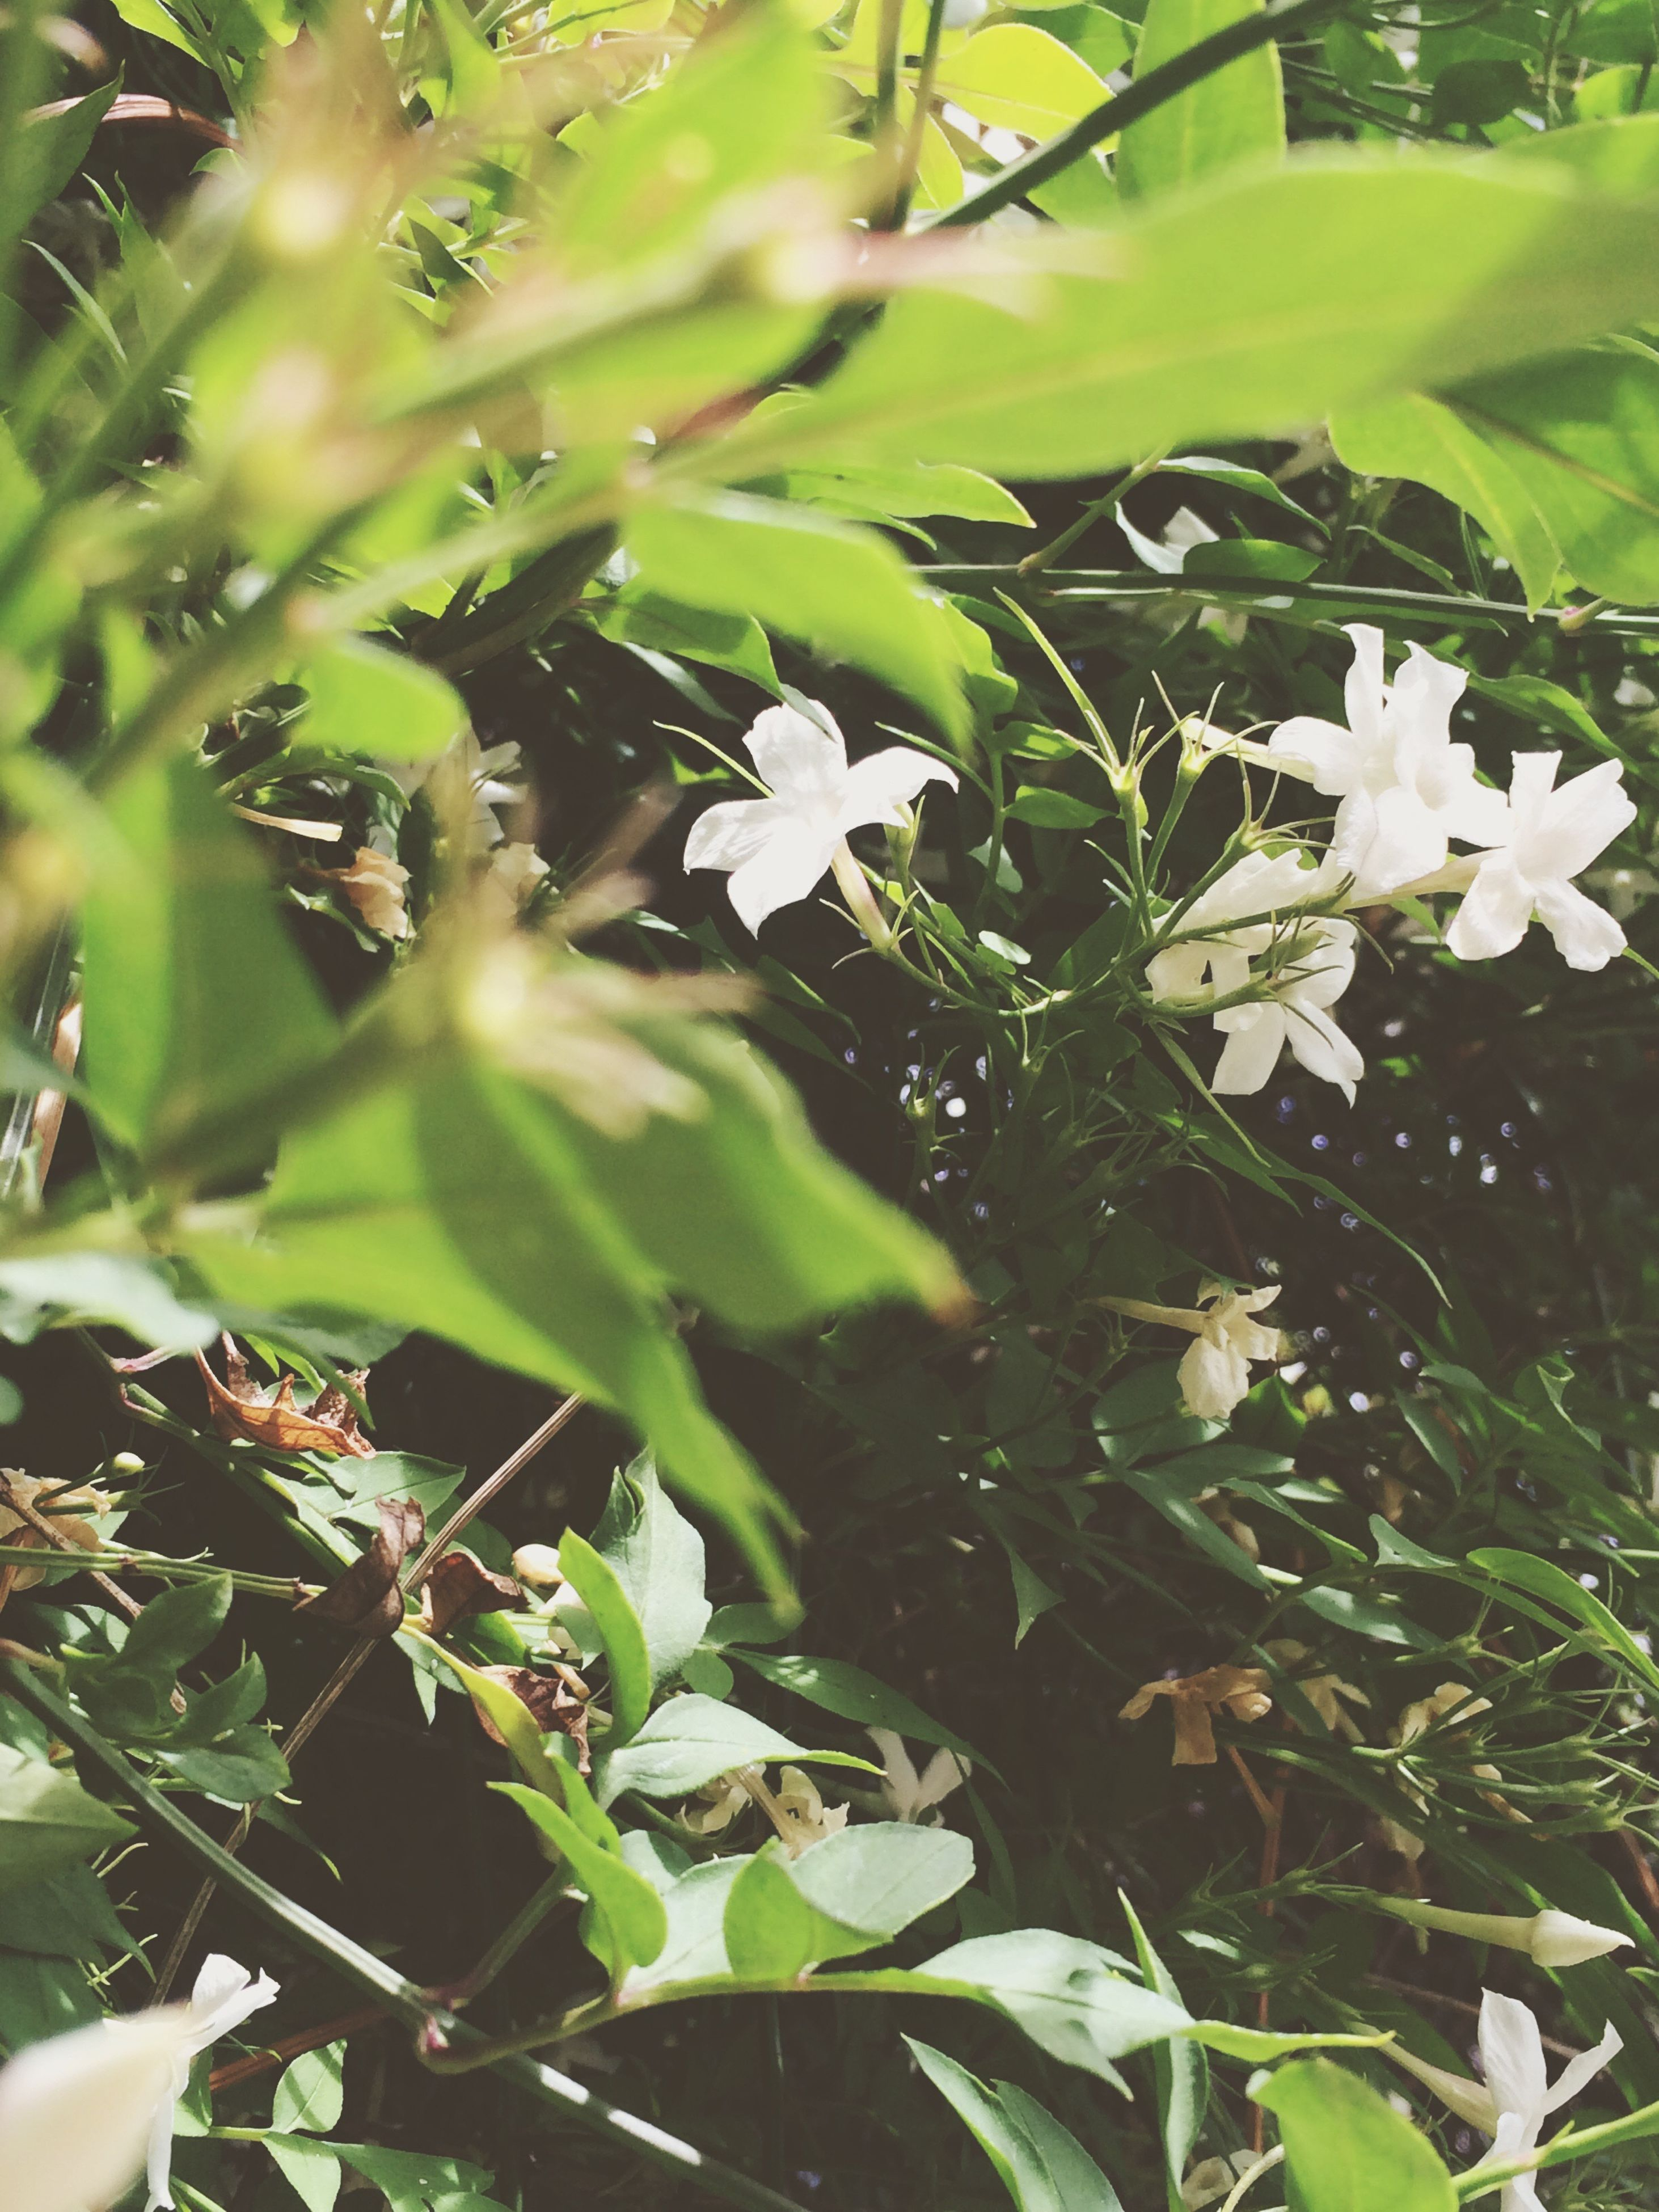 growth, flower, freshness, white color, leaf, fragility, beauty in nature, plant, petal, nature, green color, blooming, close-up, flower head, focus on foreground, in bloom, blossom, outdoors, day, white, no people, botany, stem, growing, stamen, green, selective focus, tranquility, pollen, lush foliage